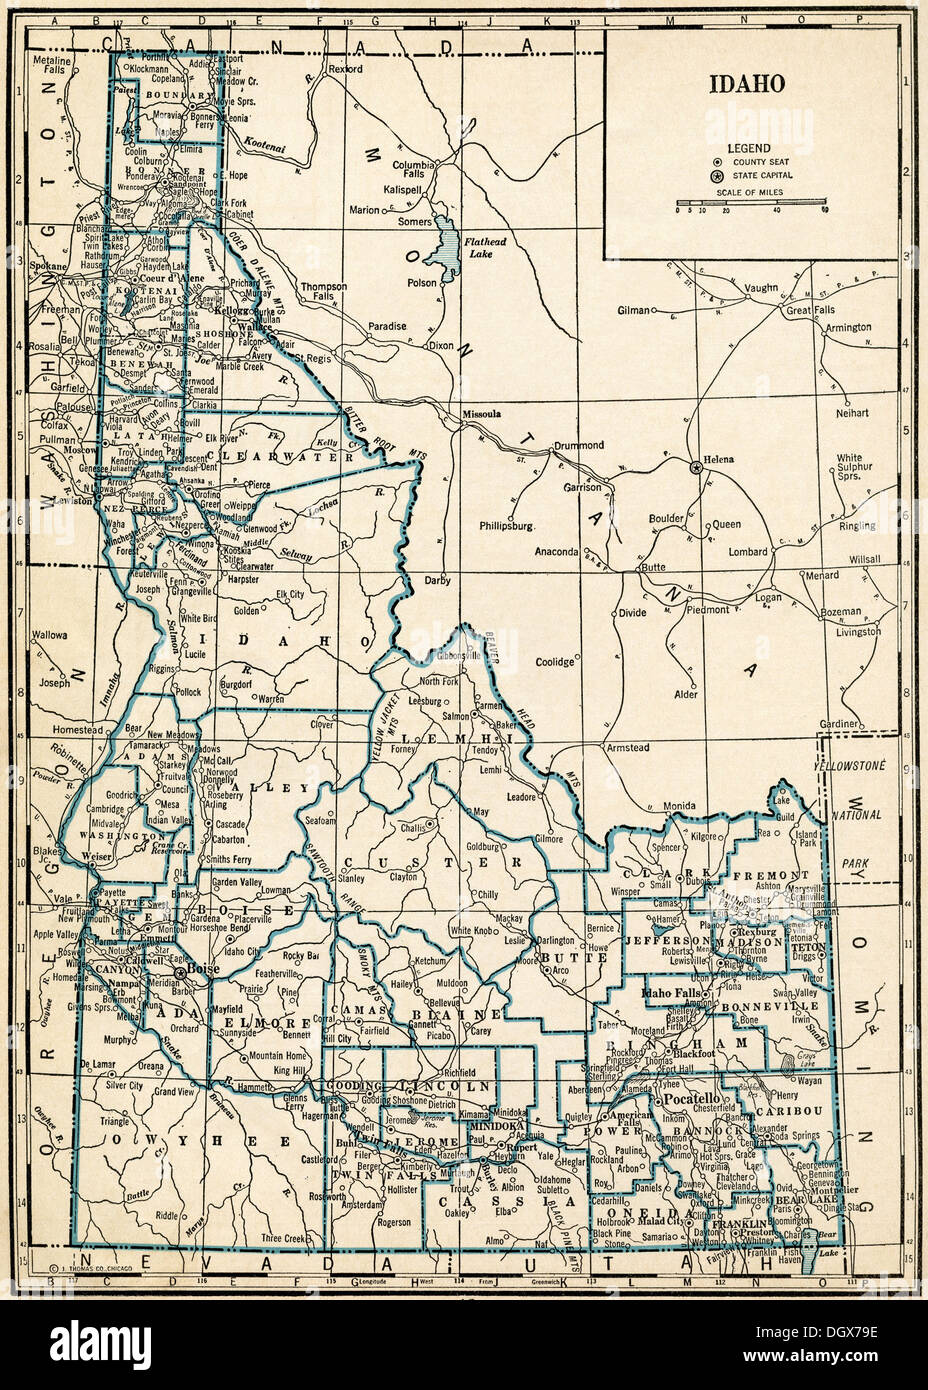 Old map of Idaho state, 1930\'s Stock Photo: 62042106 - Alamy